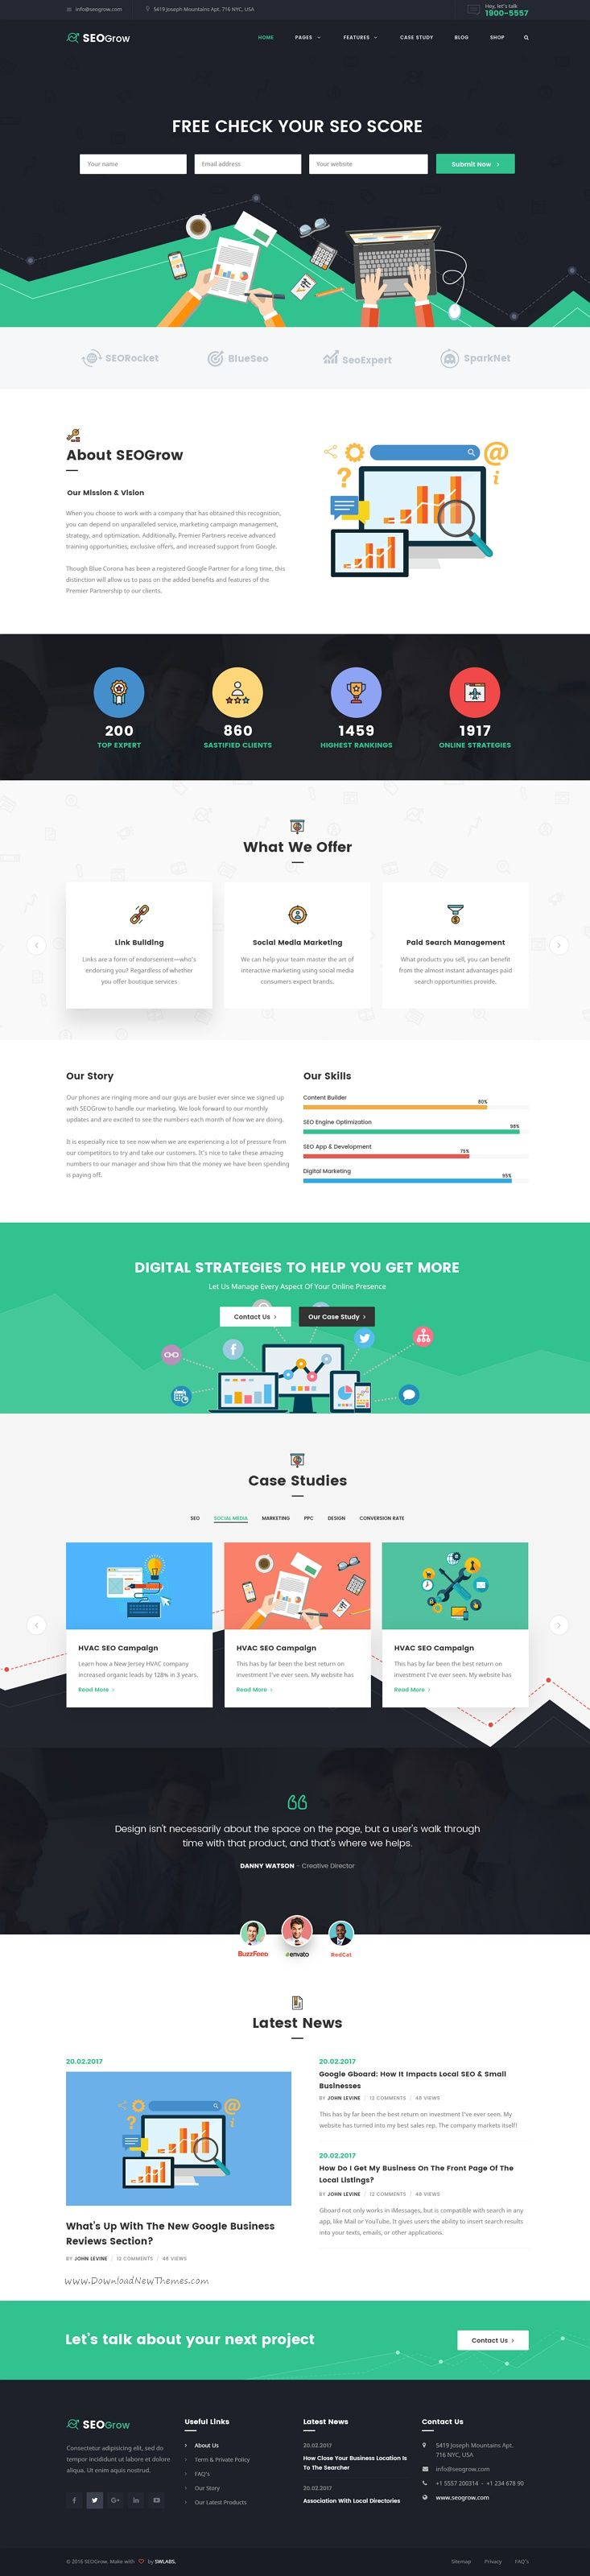 Best 25 online marketing agency ideas on pinterest what is seo grow is a perfect psd template especially for seo online marketing agency google partner digital marketing agencies website with 3 homepage malvernweather Image collections